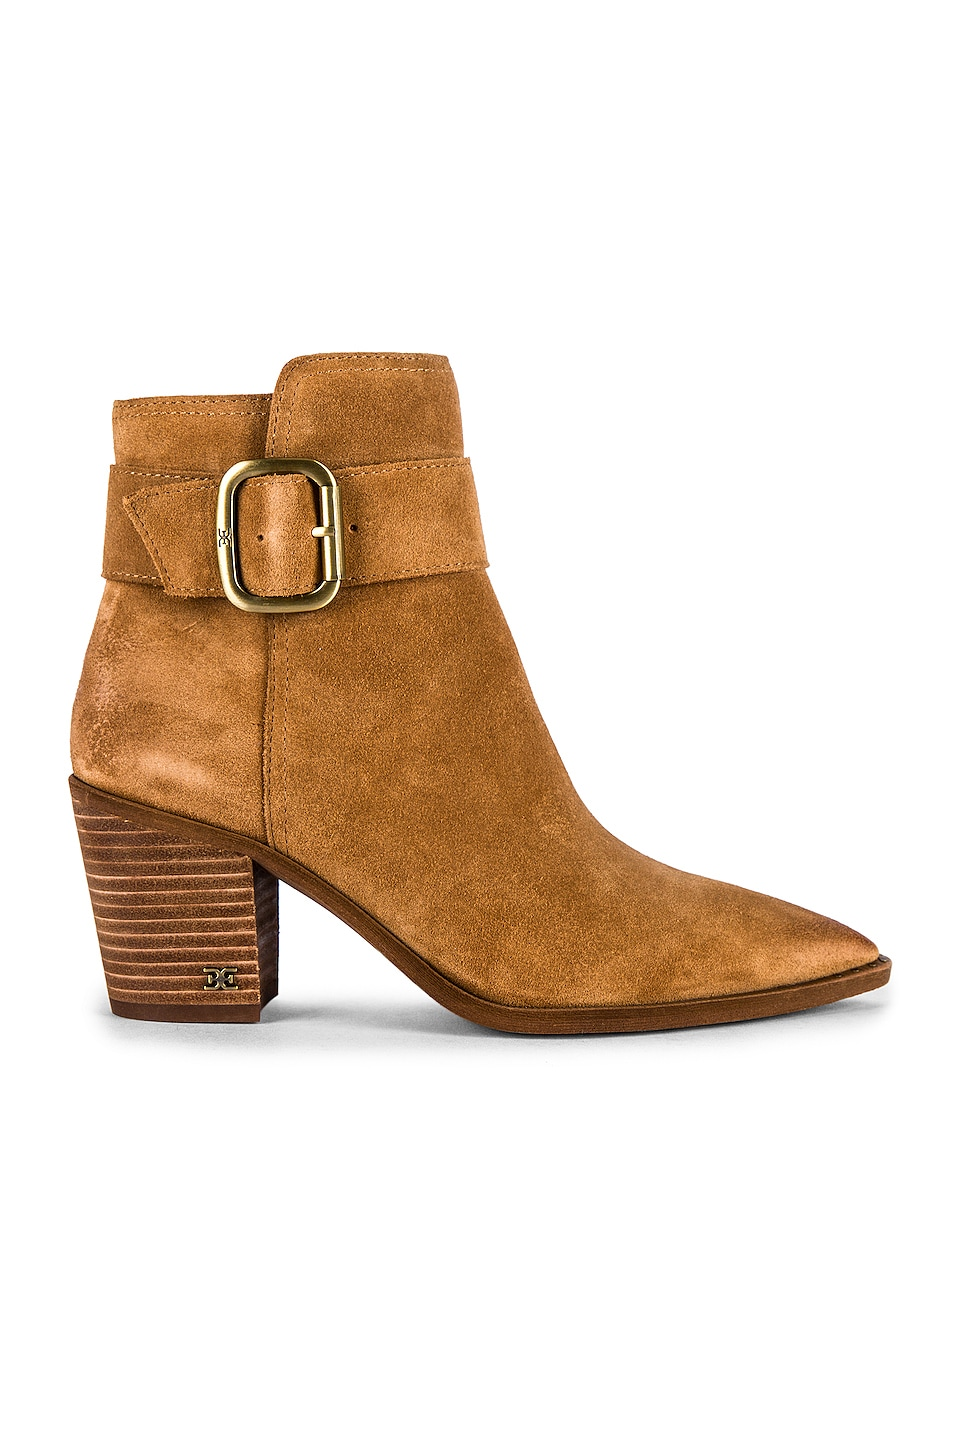 Sam Edelman Leonia Bootie in Golden Caramel